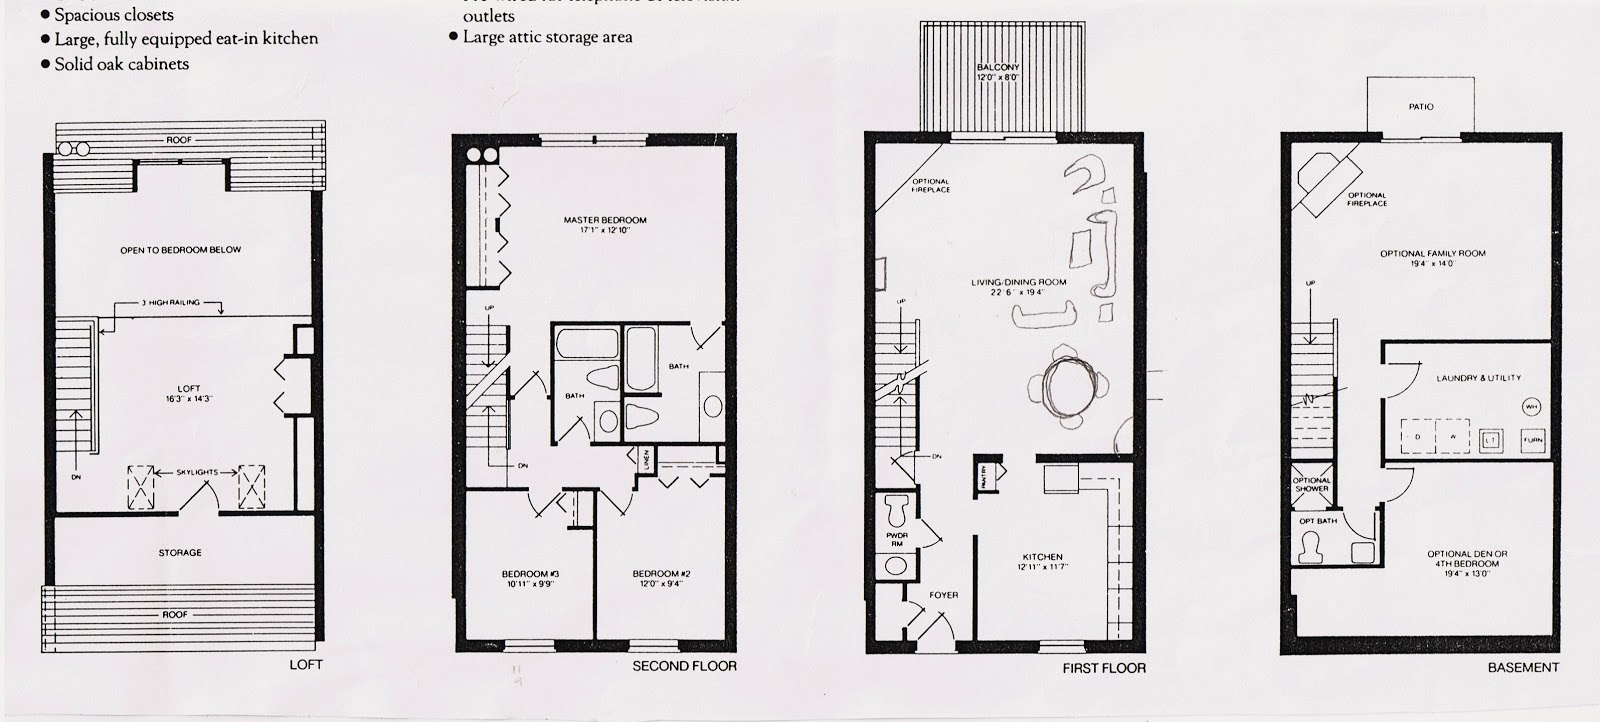 Small bathroom floor plans 5 x 8 - Small Bathroom Floor Plans 5 X 8 Hd Gallery